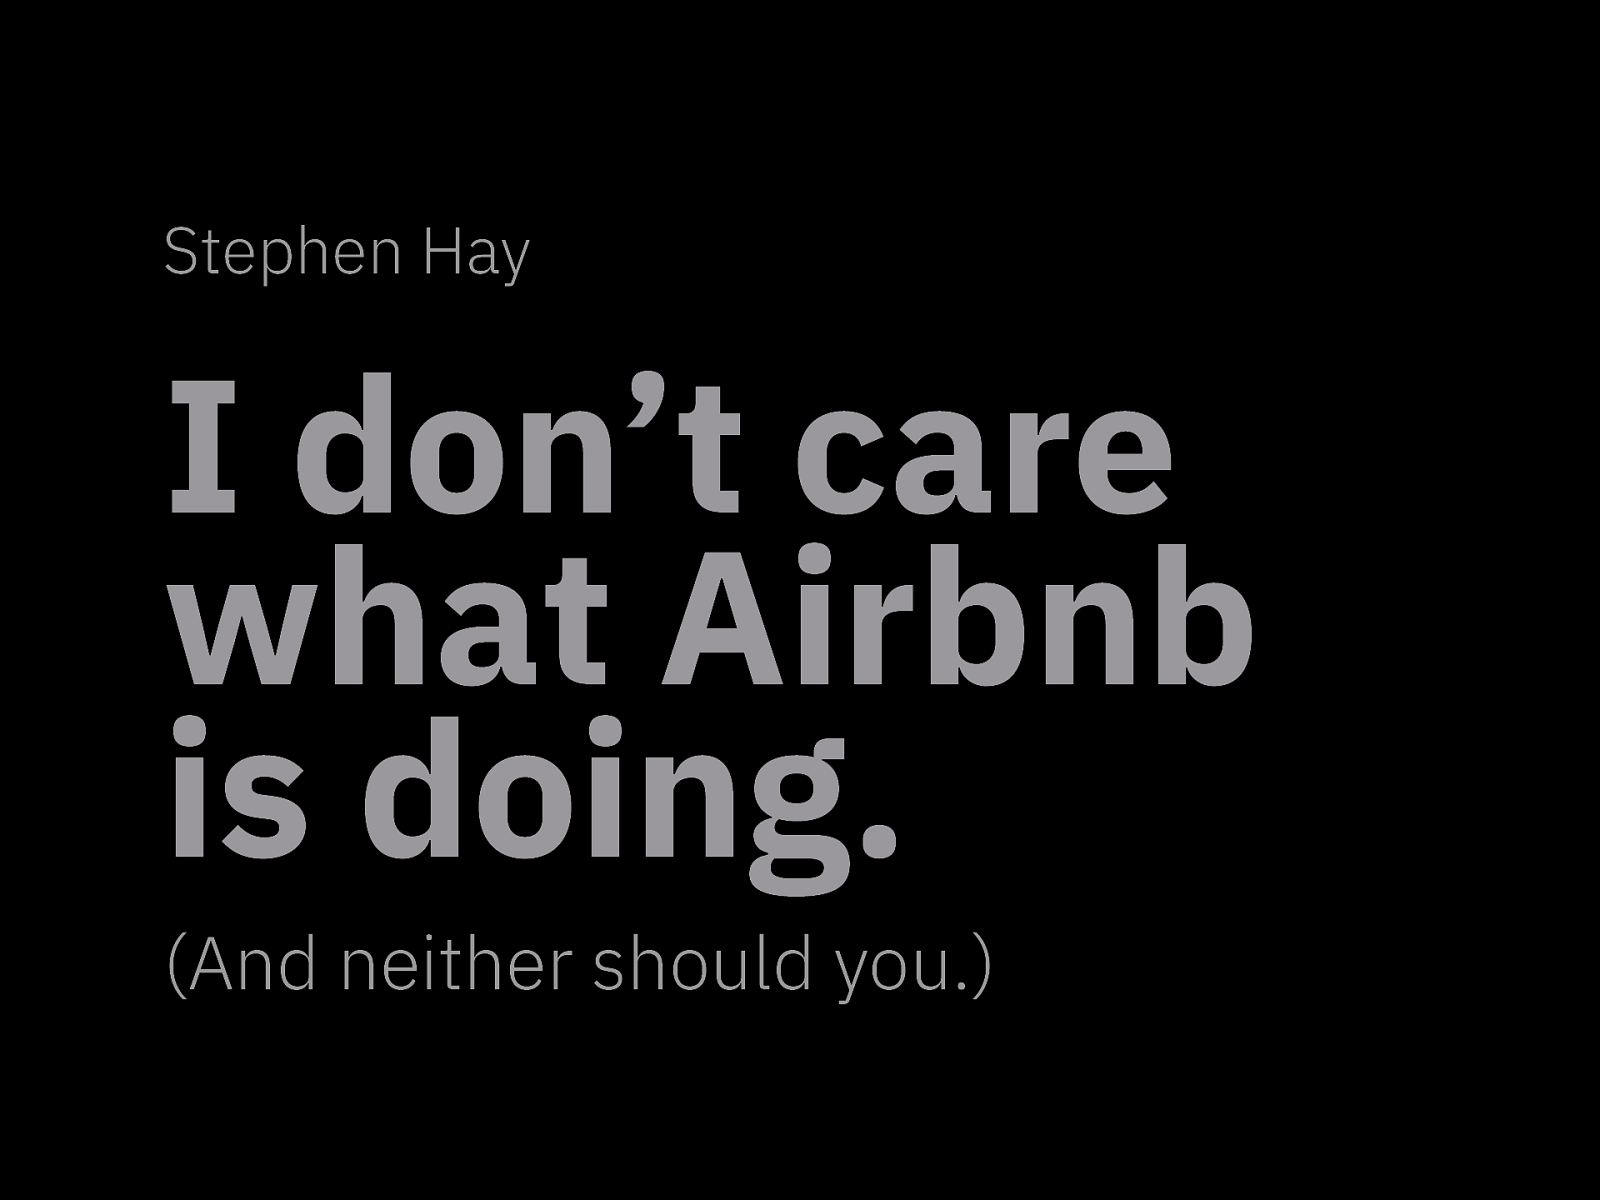 I don't care what Airbnb is doing. (And neither should you.)